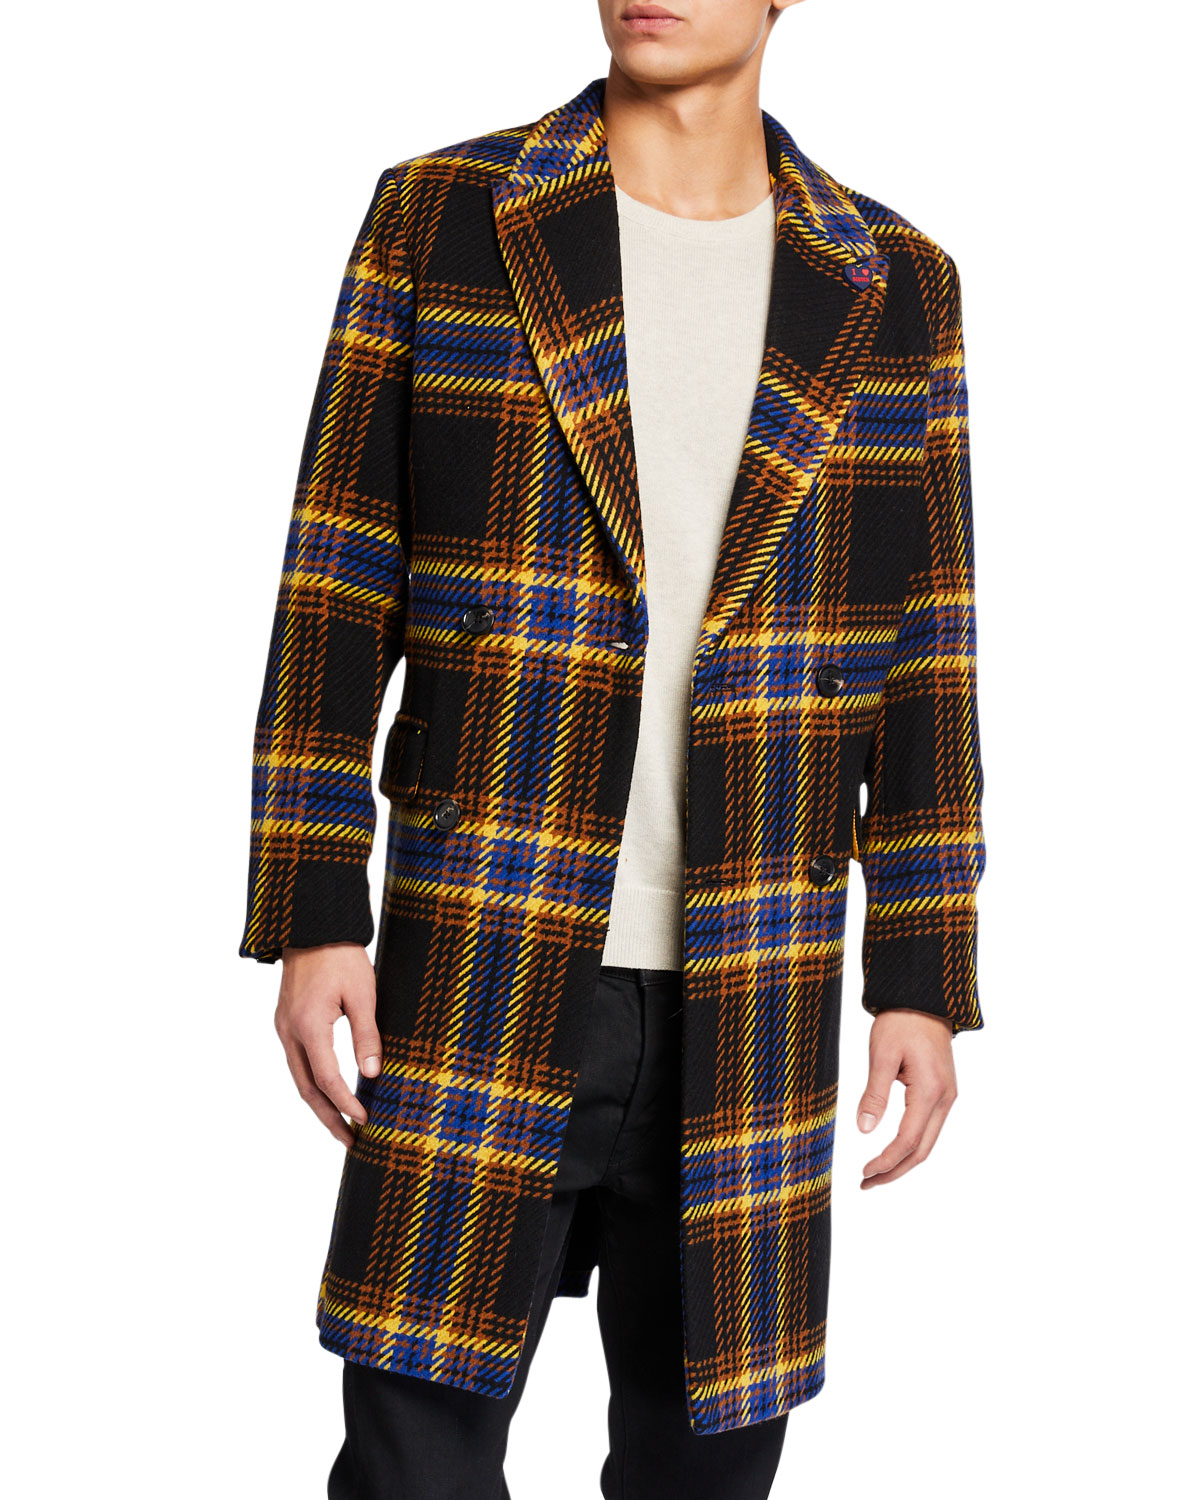 Men's Double Breasted Houndstooth Plaid Topcoat by Scotch & Soda